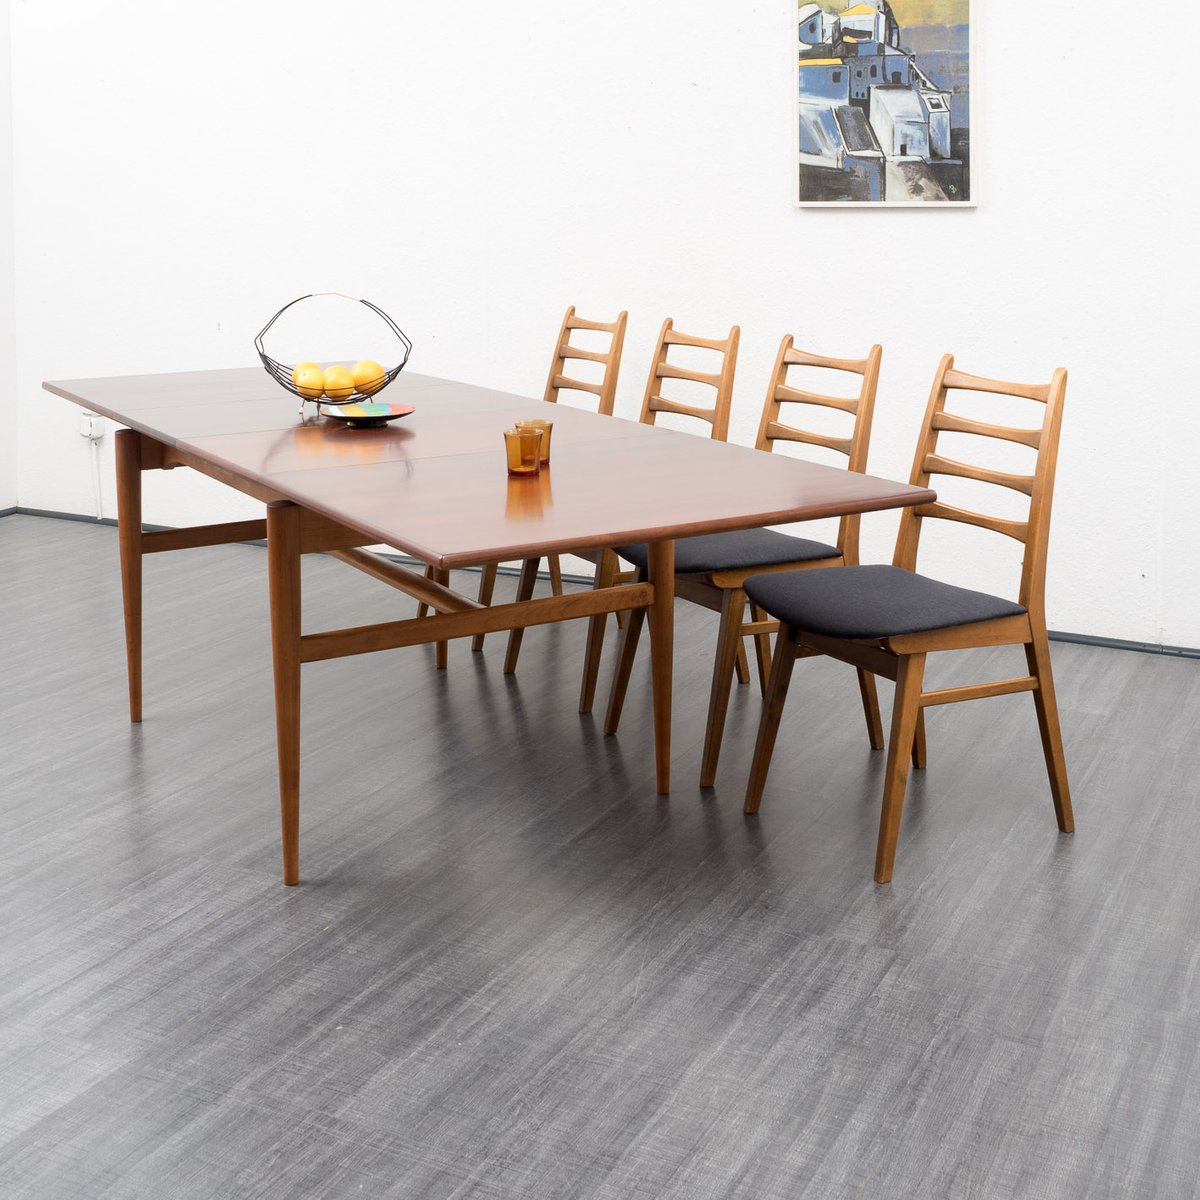 extendible cherry dining table 1960s for sale at pamono. Black Bedroom Furniture Sets. Home Design Ideas